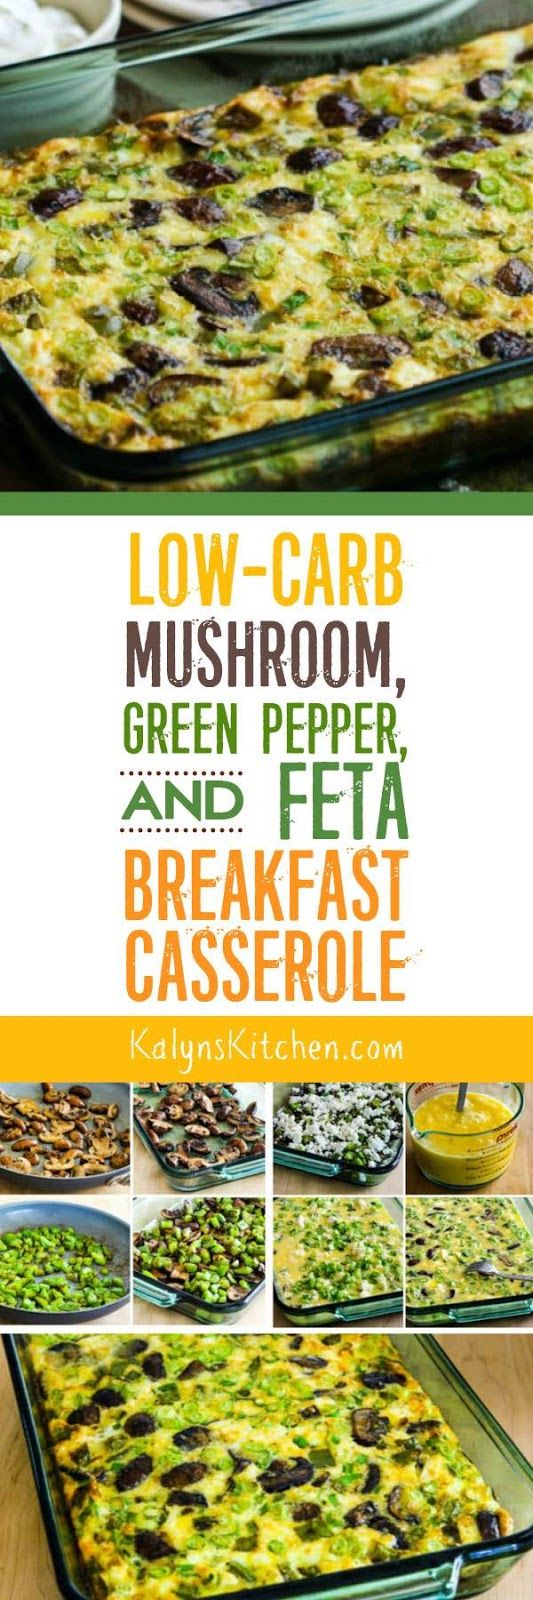 This Low-Carb Mushroom, Green Pepper, and Feta Breakfast Casserole is a perfect breakfast to make on the weekend and re-heat all week, and this tasty breakfast casserole is also gluten-free, meatless, and South Beach Diet friendly. [found on KalynsKitchen.com]